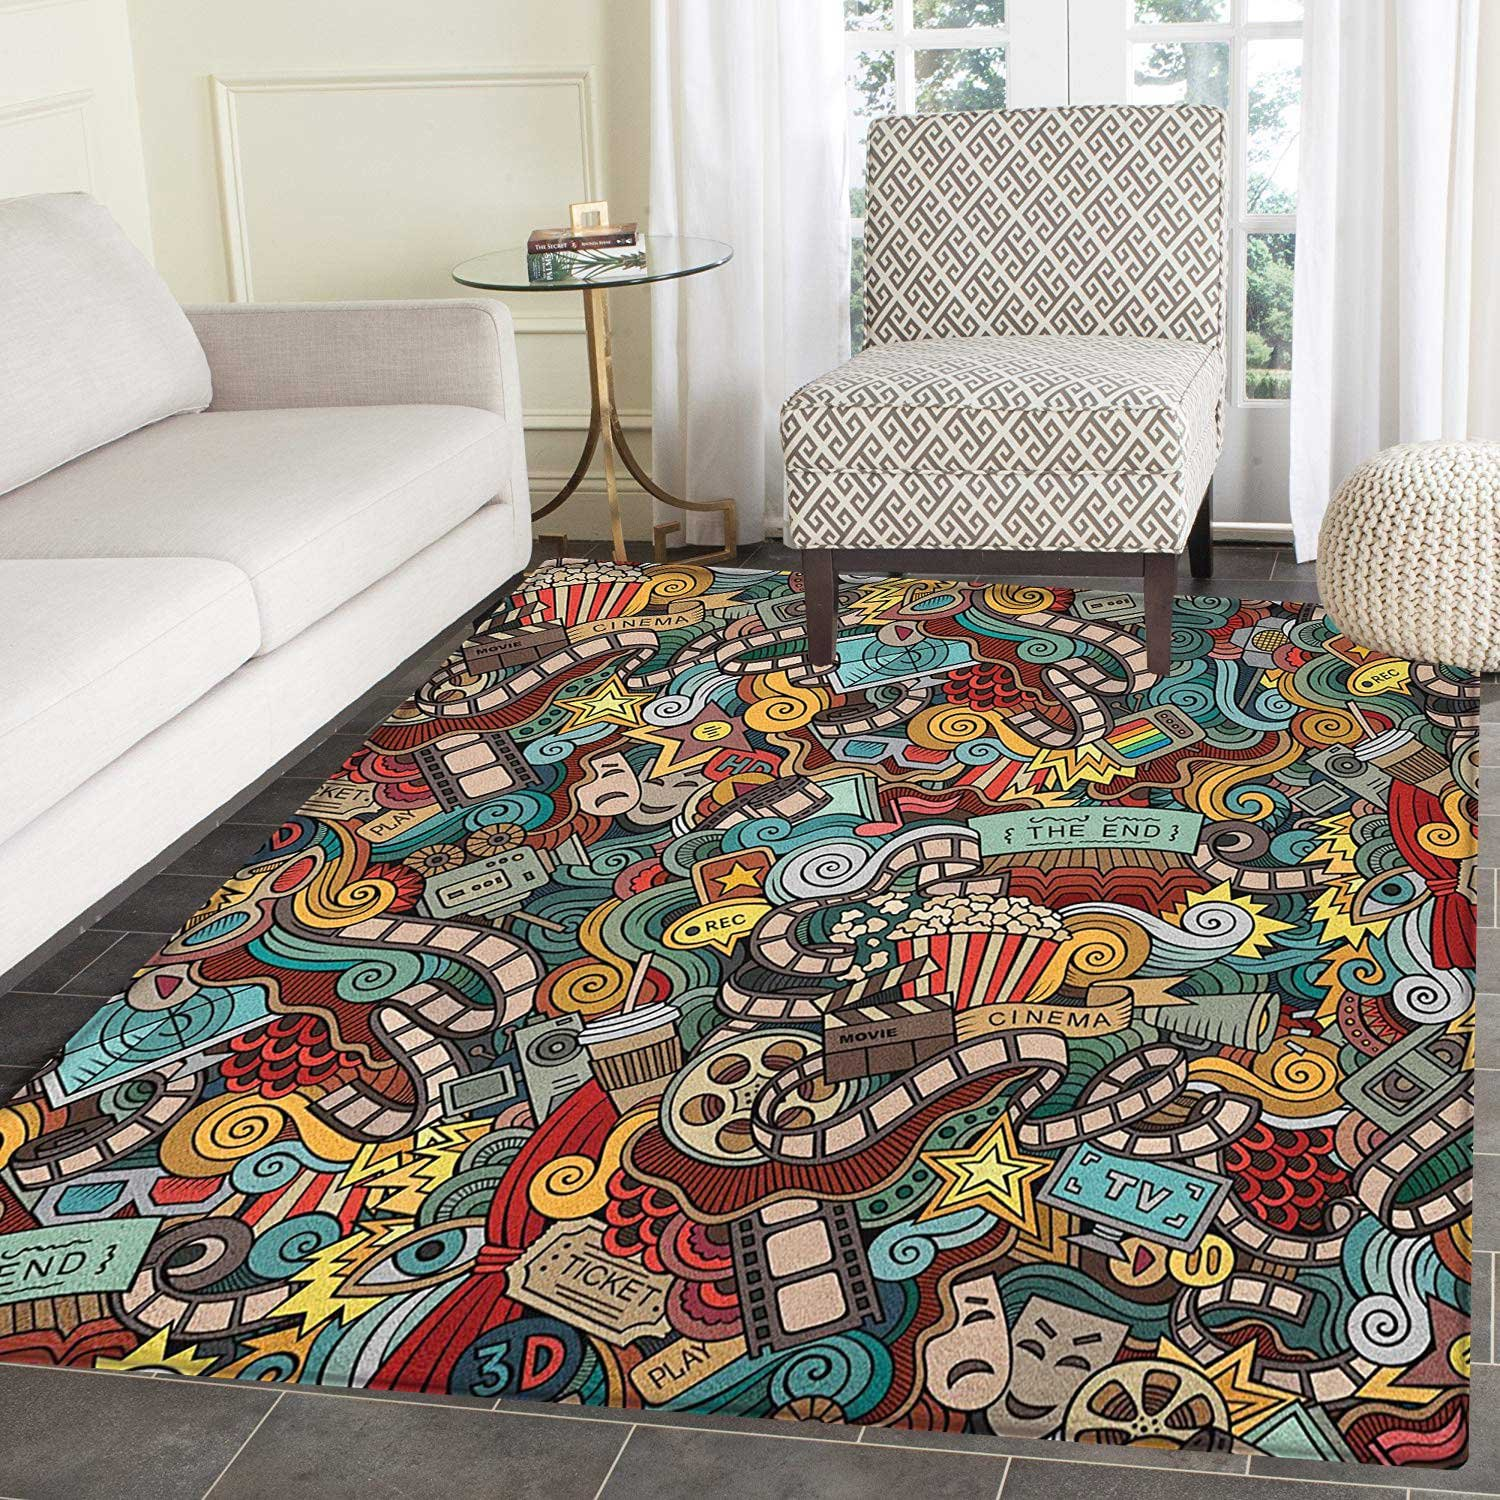 Doodle Rugs for Bedroom Cinema Items Combined in an Abstract Style Popcorn Movie Reel The End Theatre Masks Circle Rugs for Living Room 2'x3' Multicolor